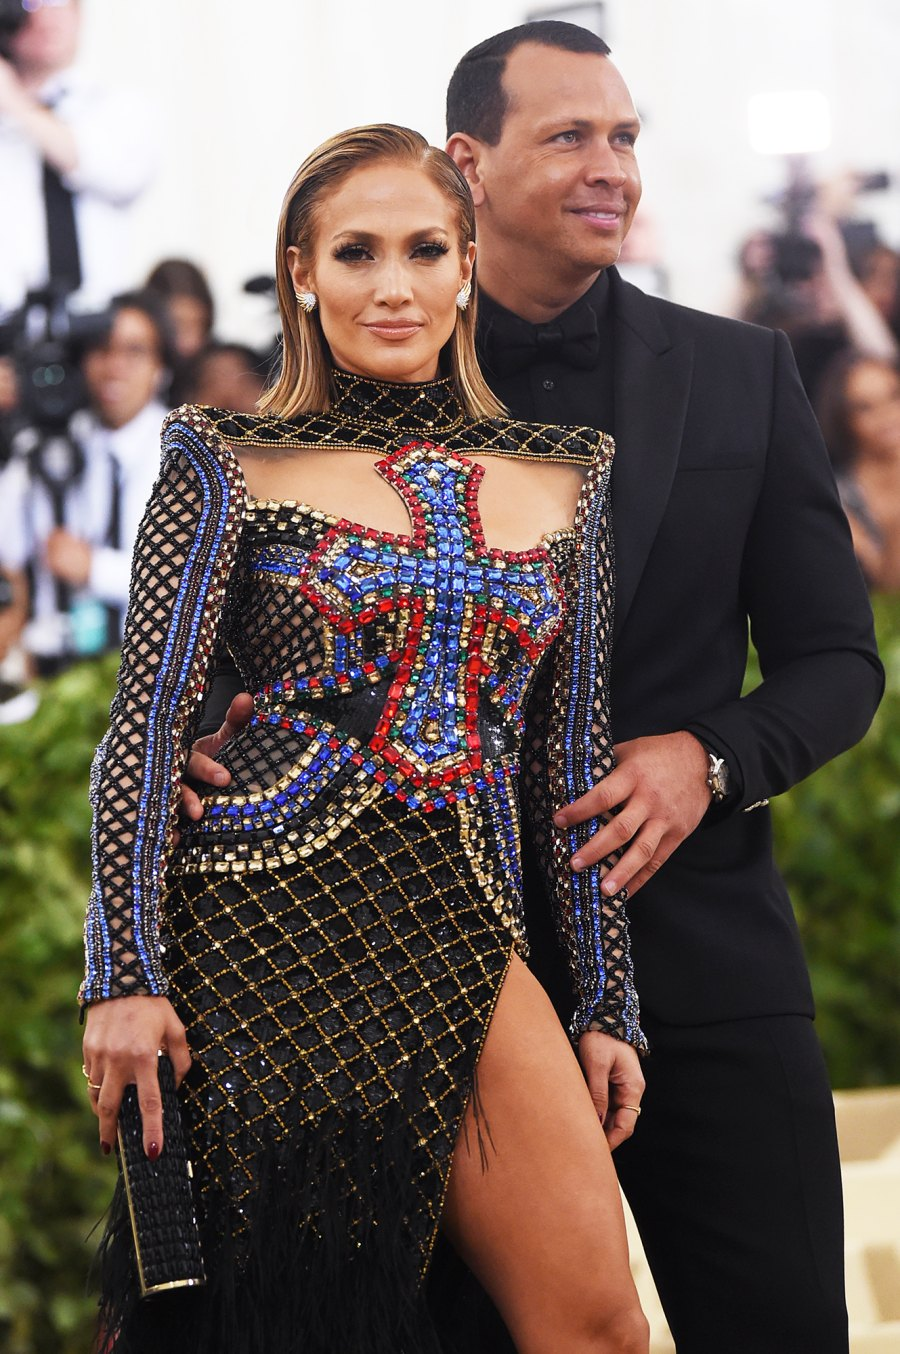 Jennifer Lopez's Dating History: A Timeline of Her Famous Relationships, Exes and Flings